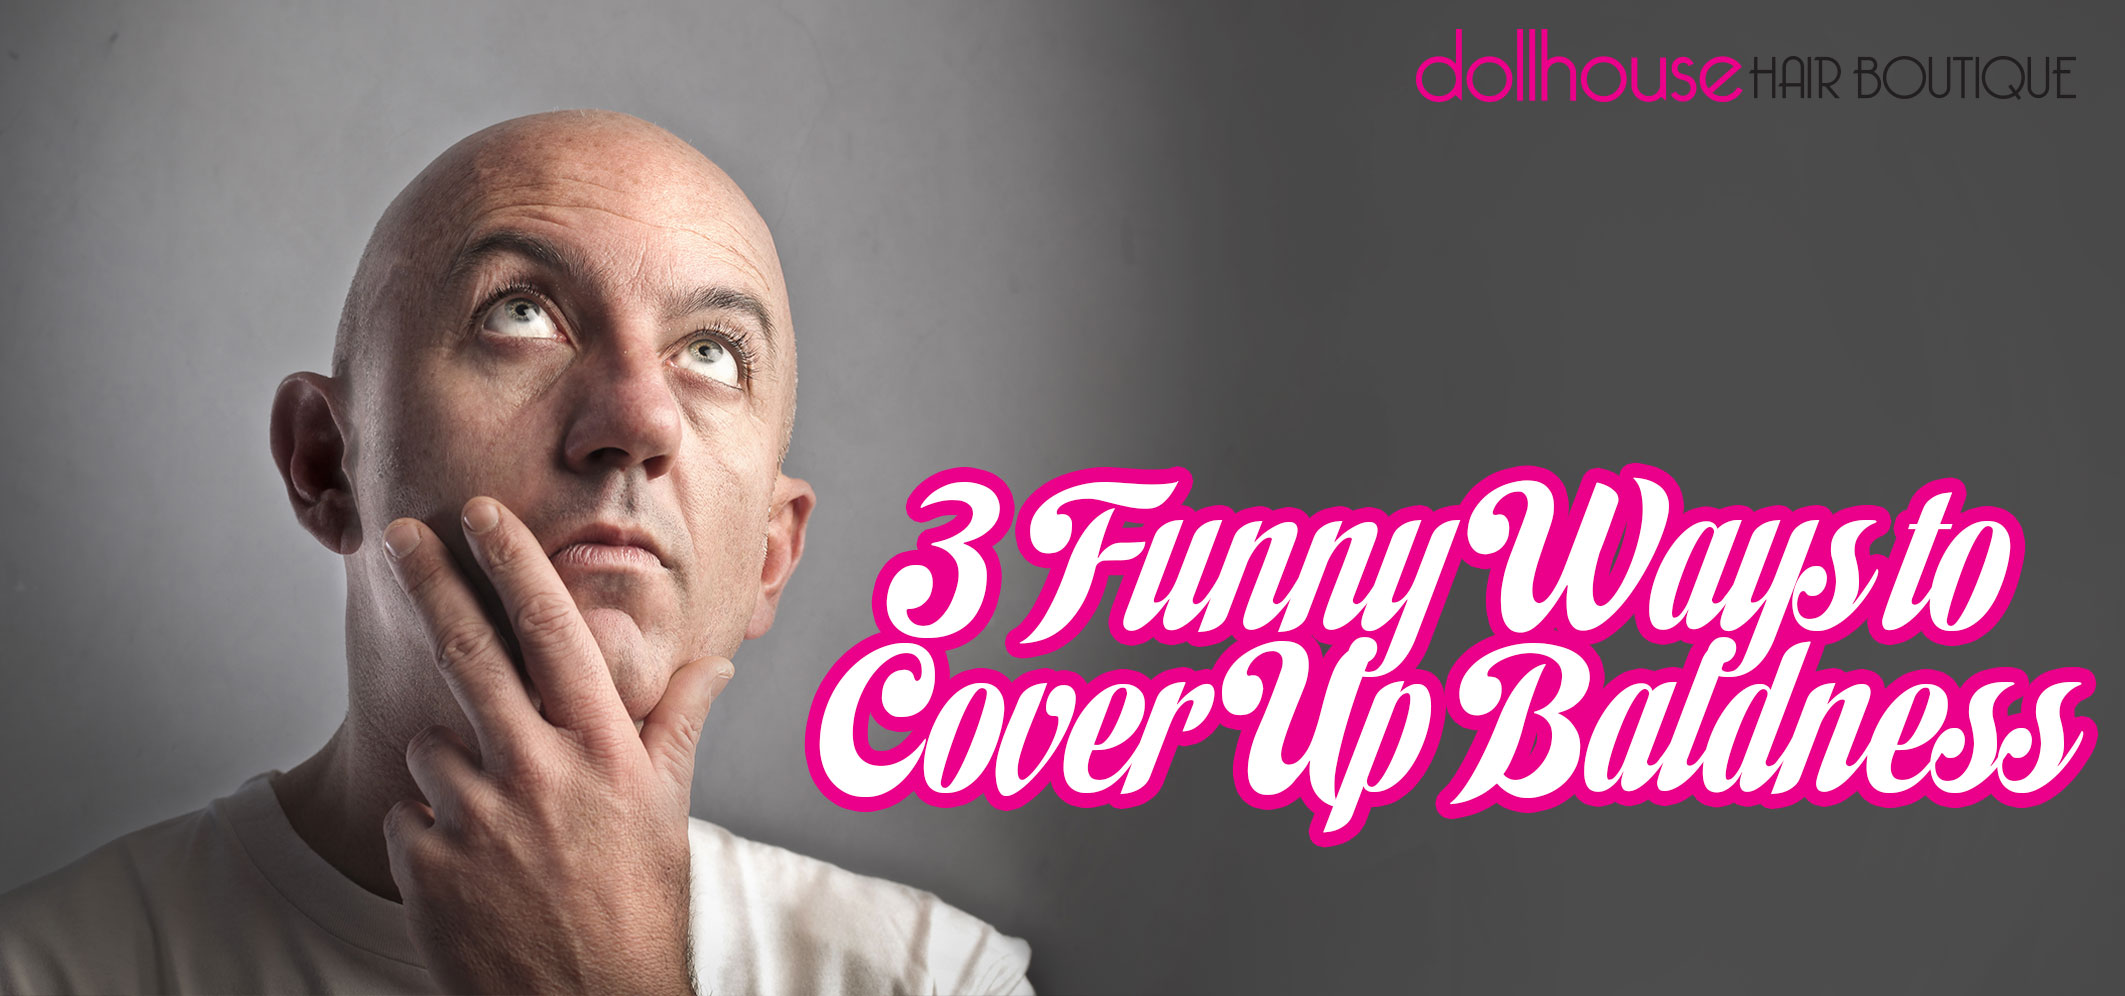 3-Funny-Ways-to-Cover-Up-Baldness